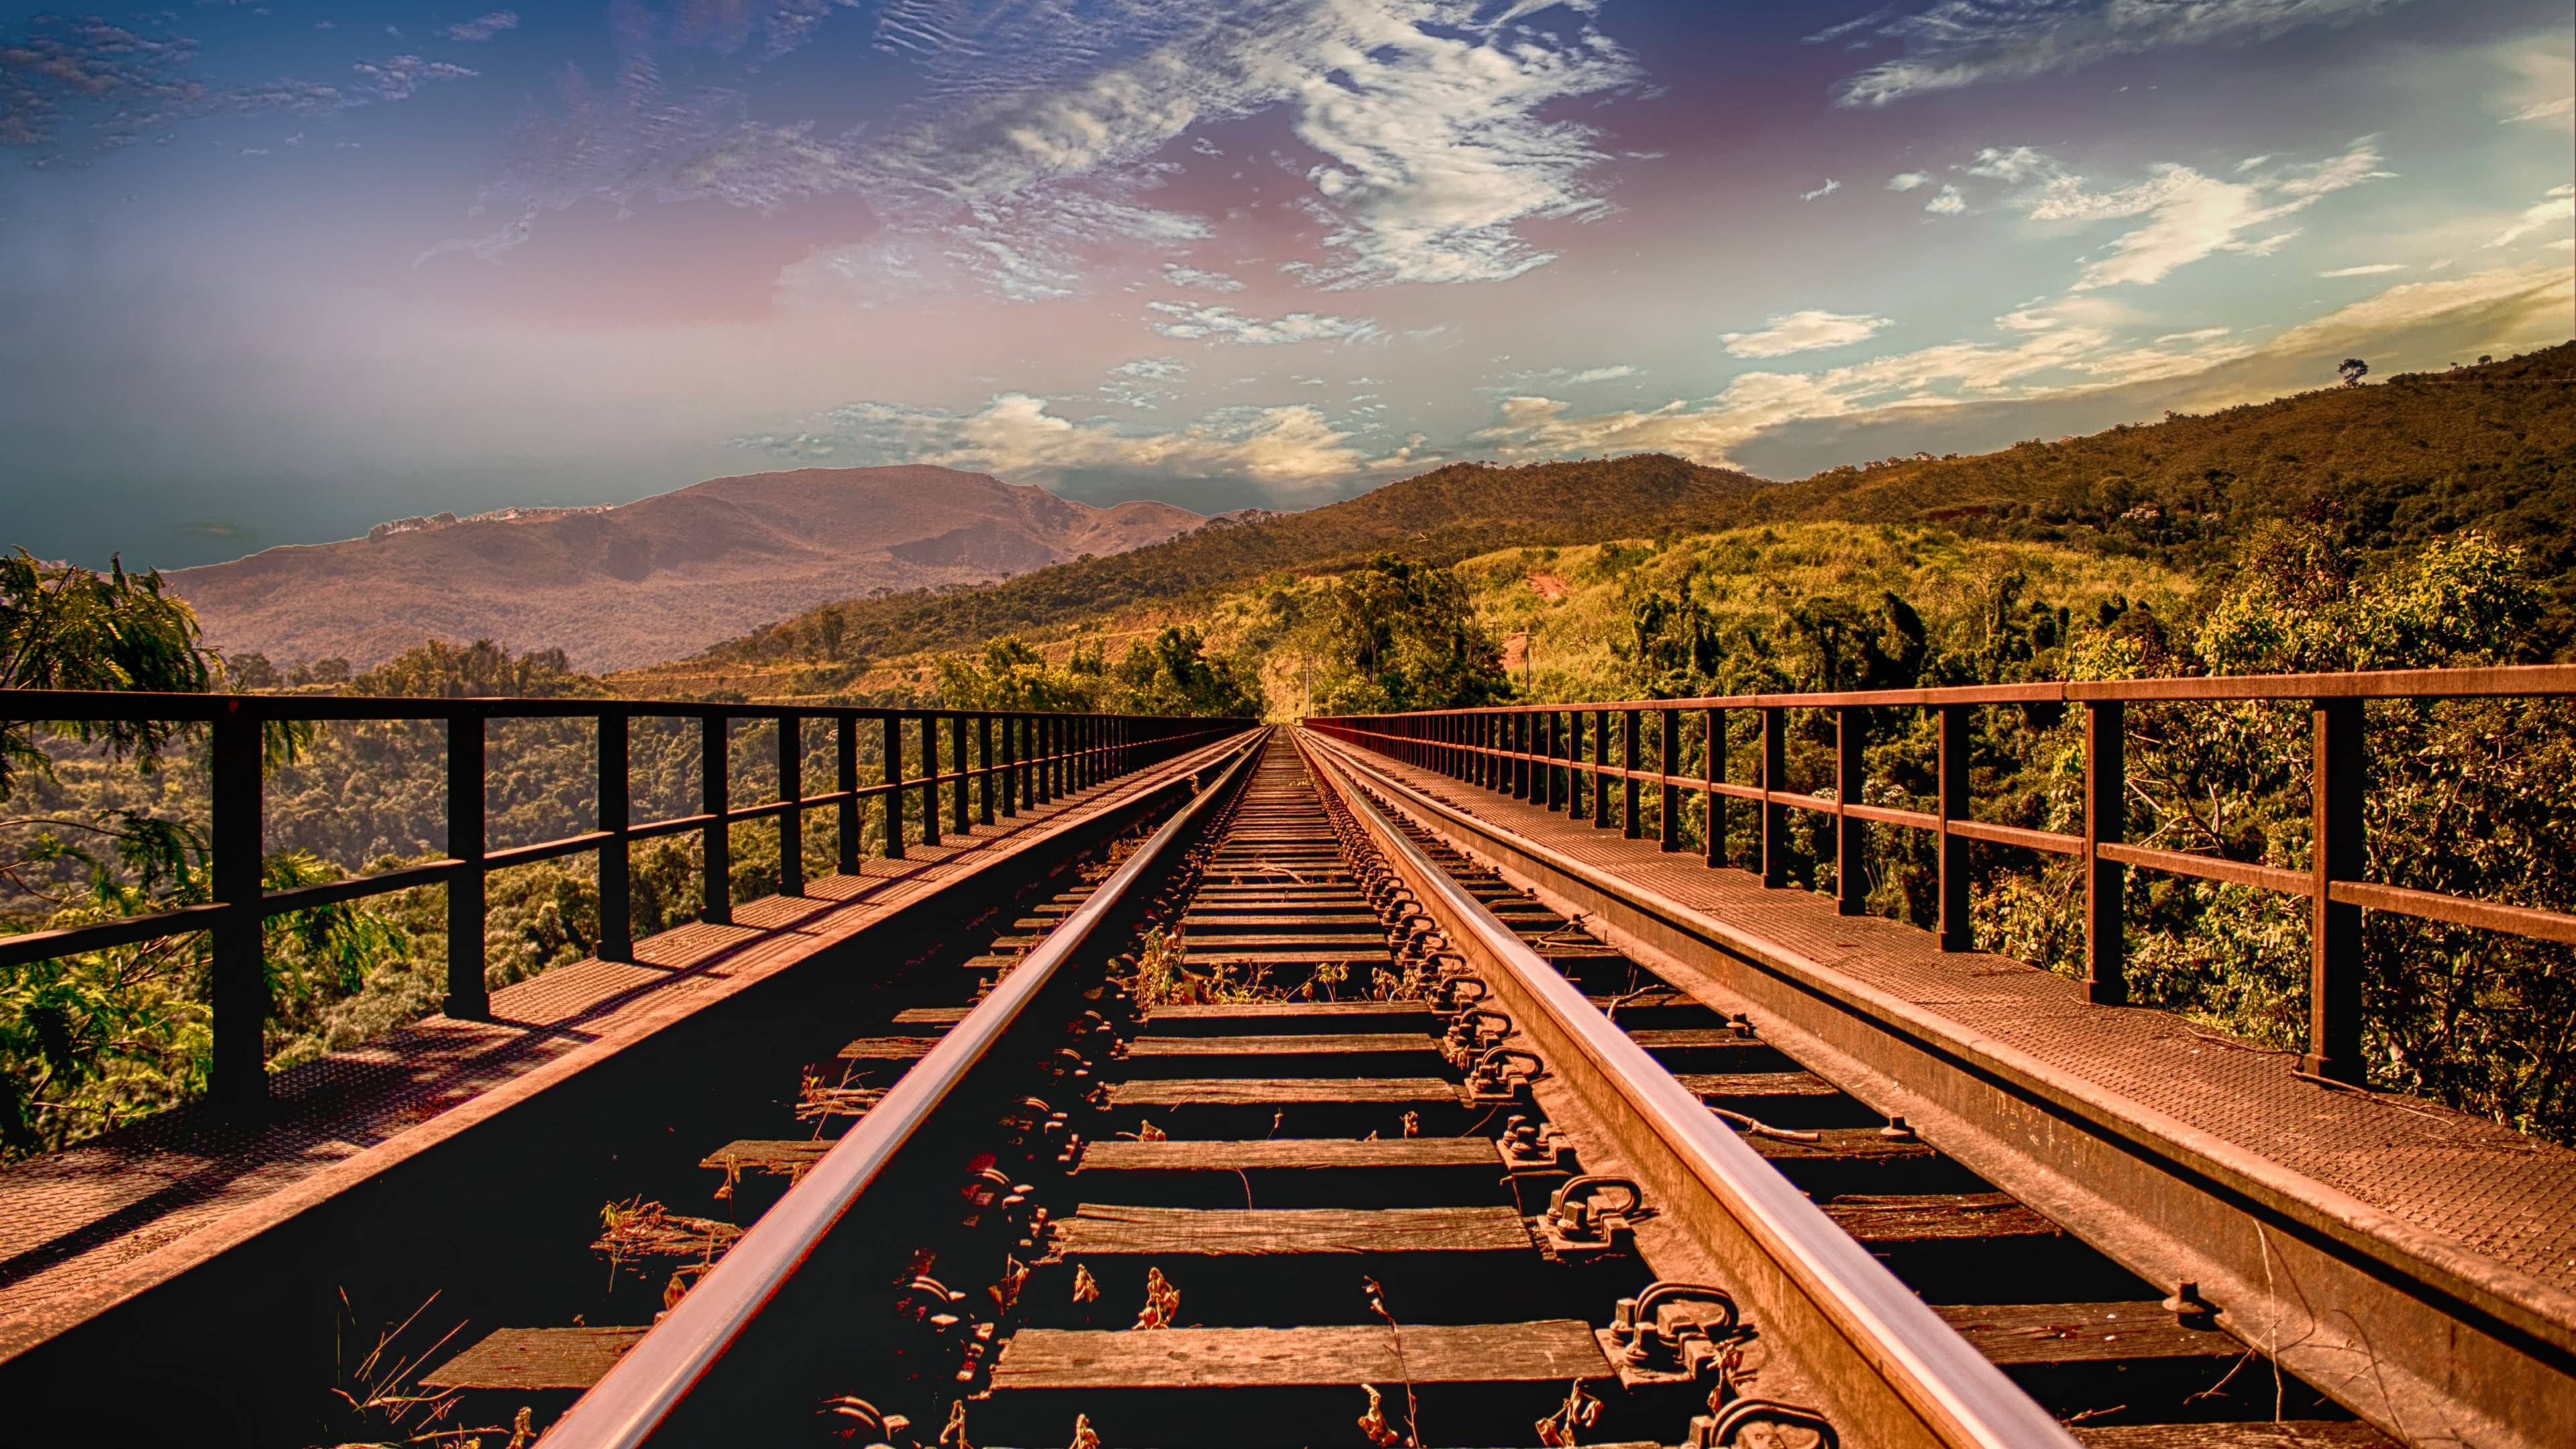 Railway track in mountains wallpaper